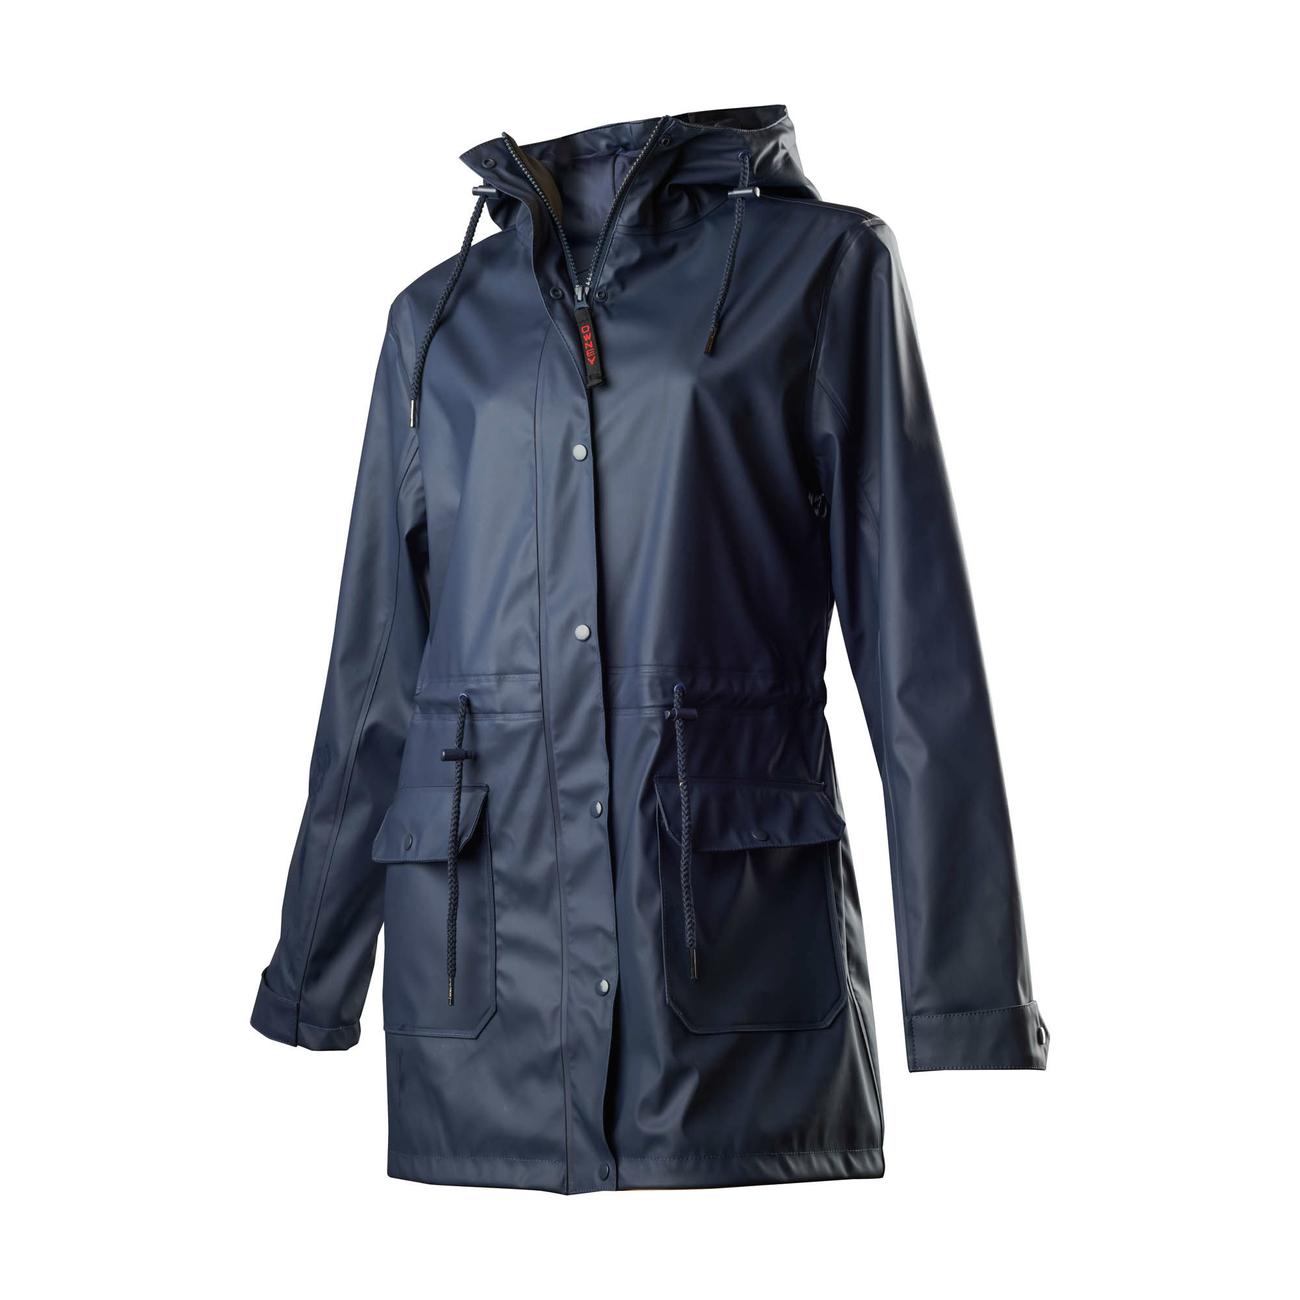 OWNEY Damen-Regenjacke Vela, S, blau